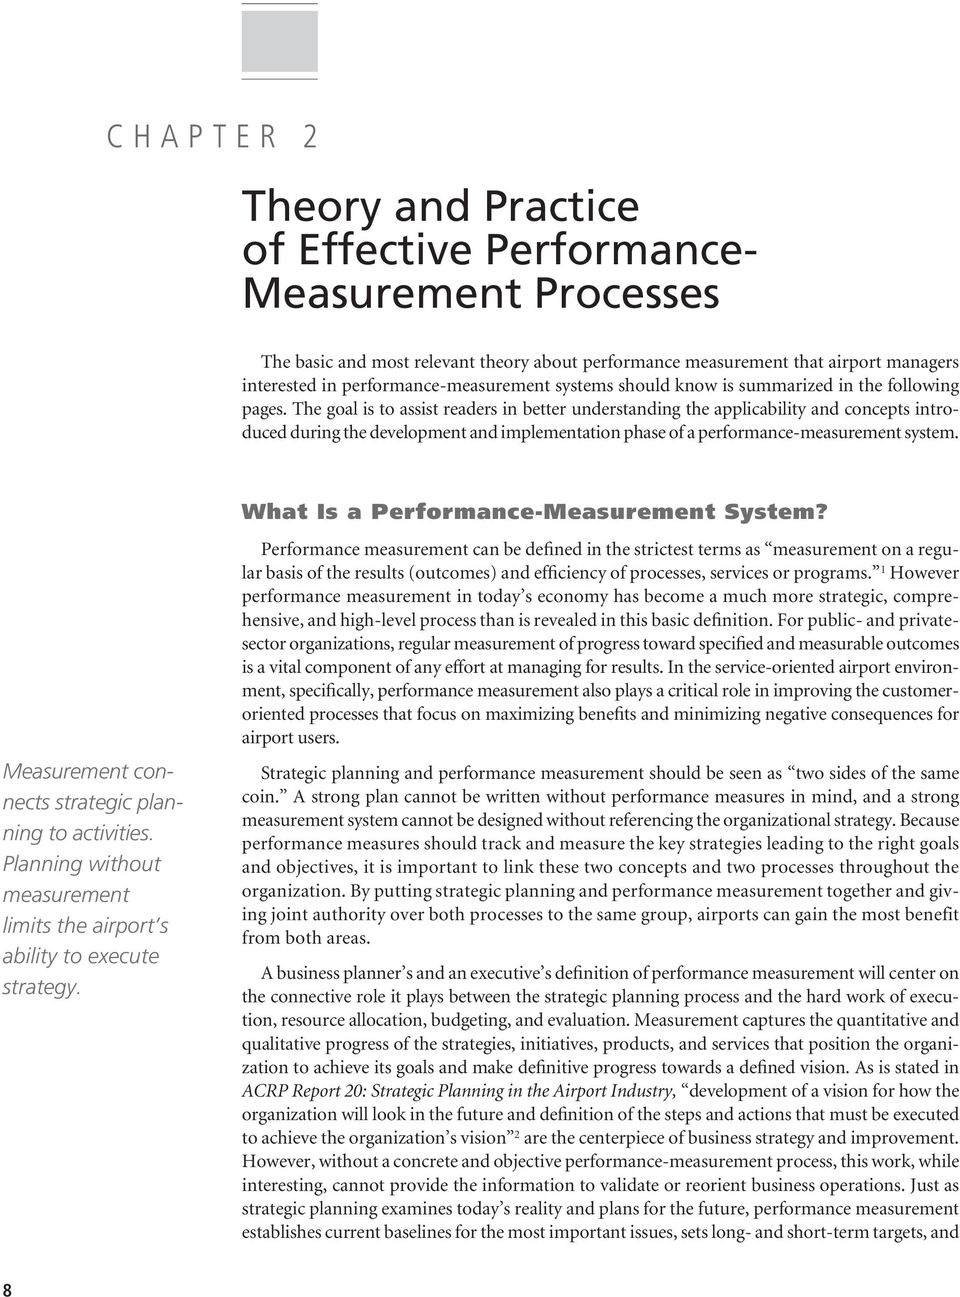 The goal is to assist readers in better understanding the applicability and concepts introduced during the development and implementation phase of a performance-measurement system.